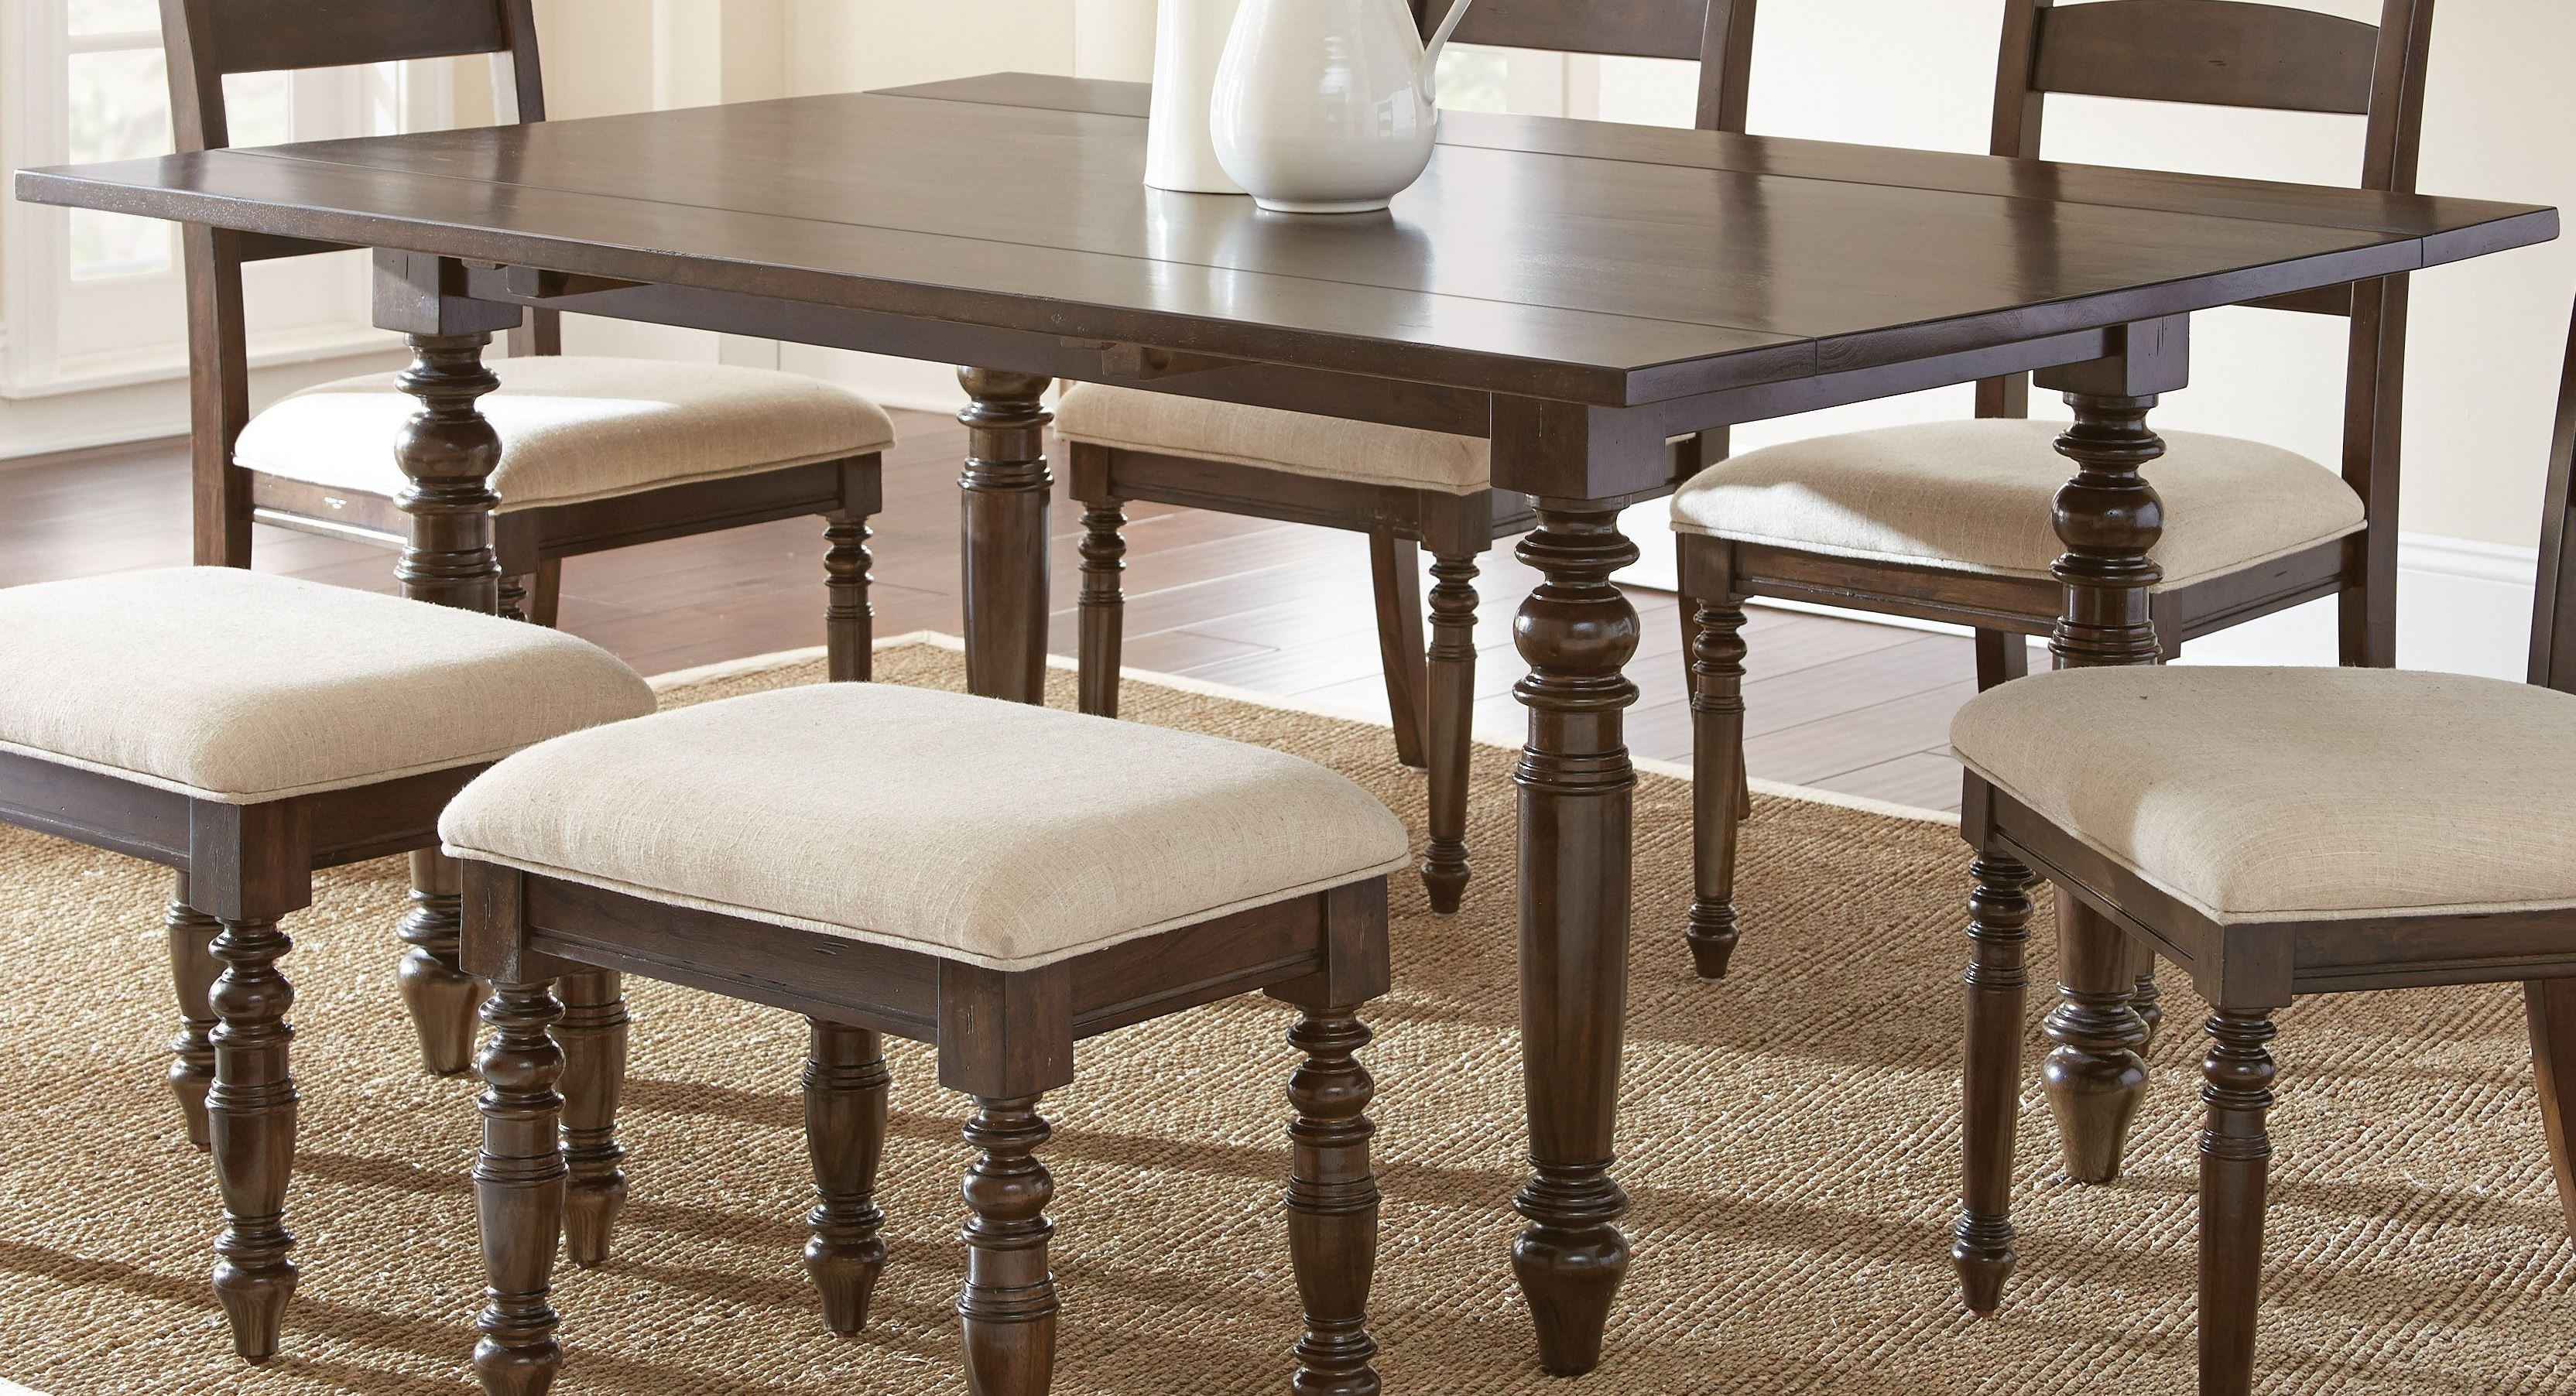 Bexley warm espresso rectangular drop leaf dining table for Rectangular drop leaf dining table